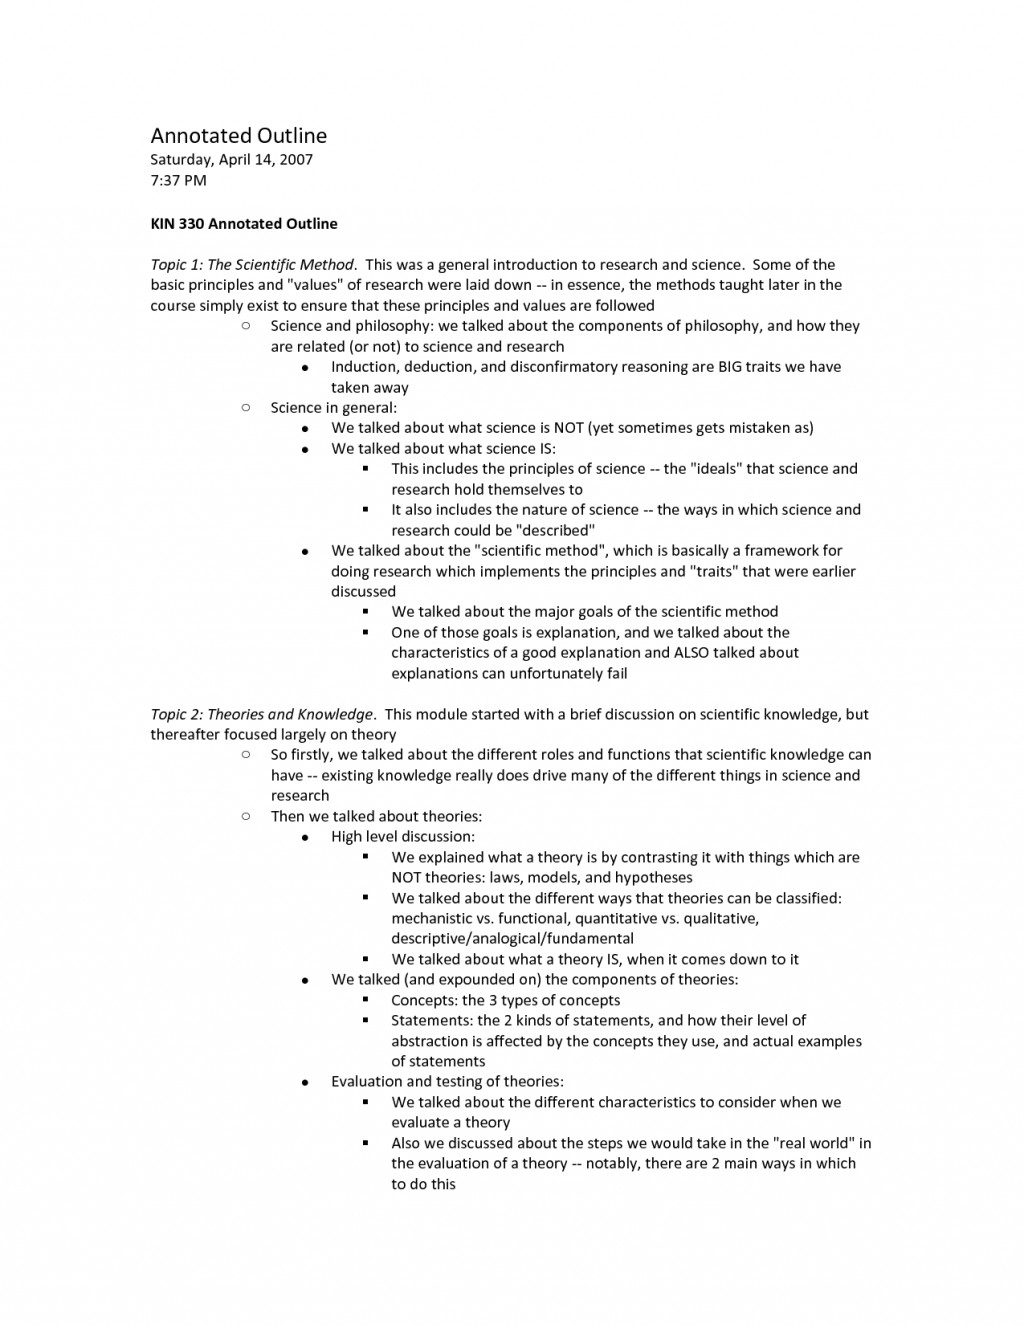 003 Apa Annotated Outline For Research 308696 Bibliography Frightening Paper Large